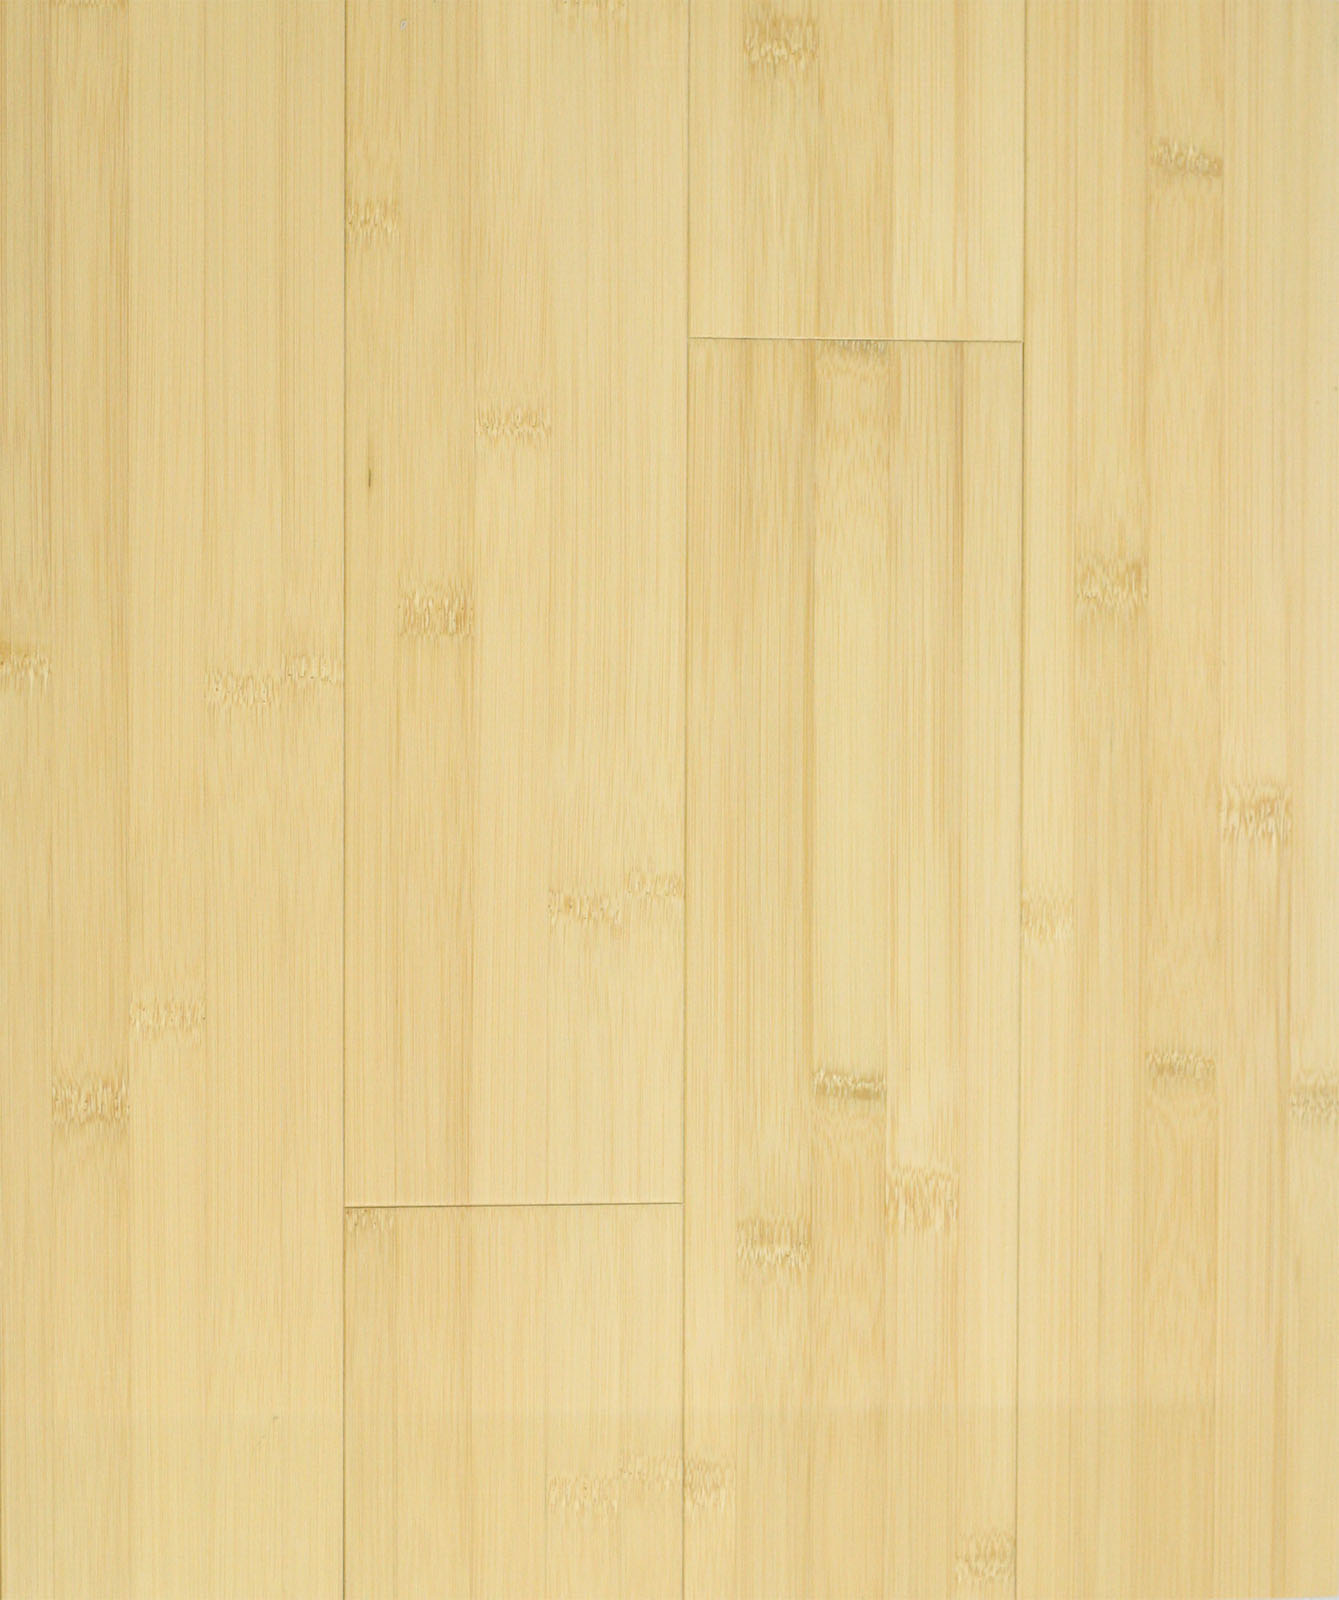 How to install bamboo hardwood floors american hwy for Bamboo hardwood flooring